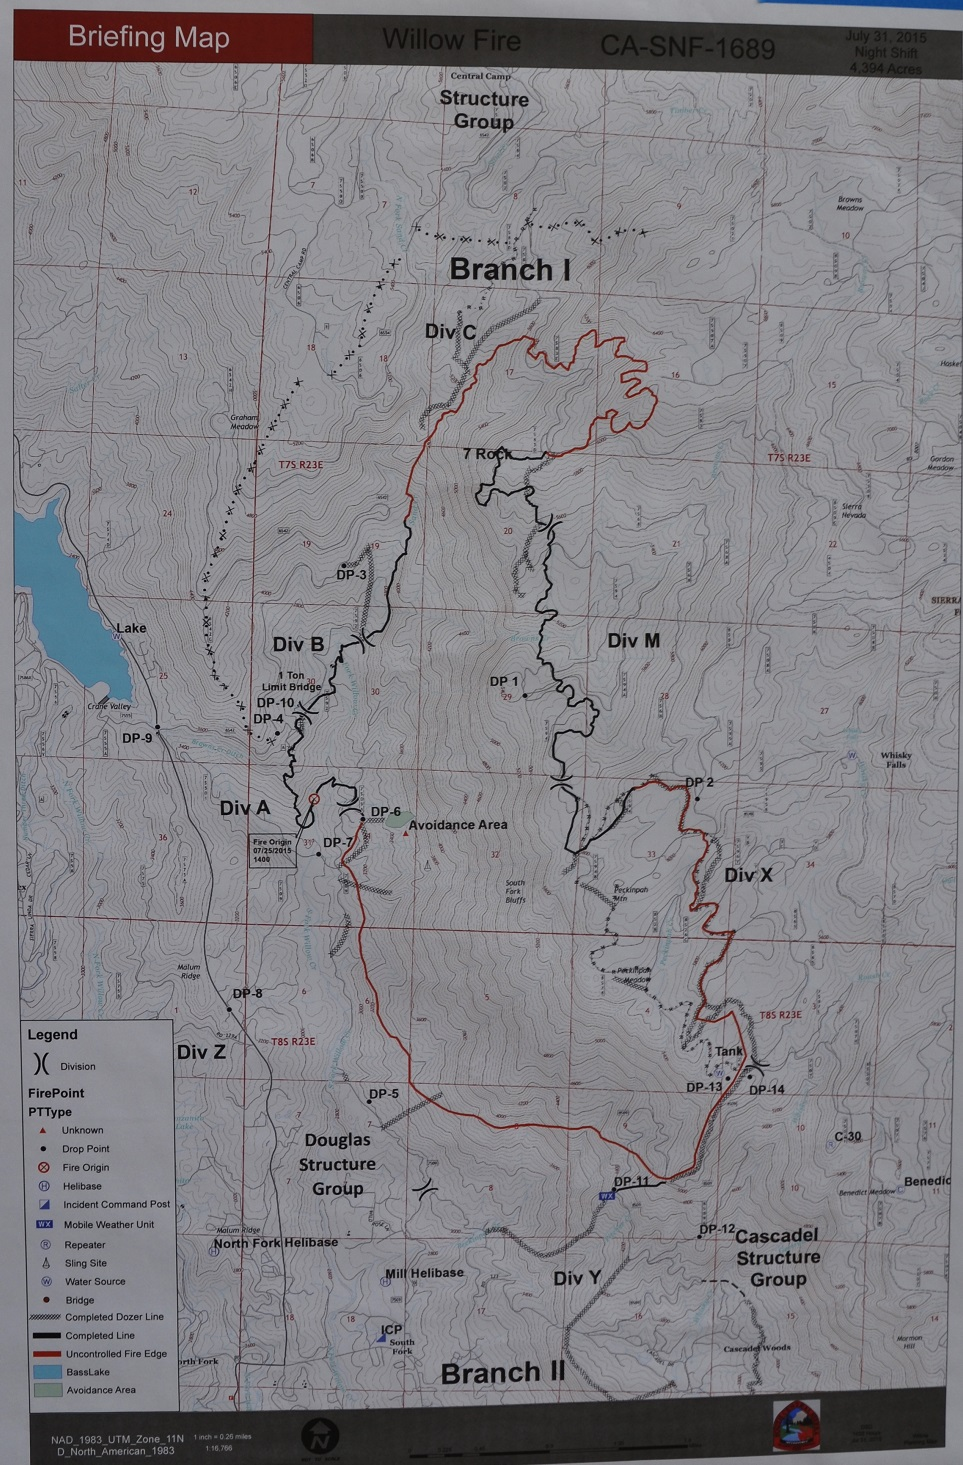 Willow Fire perimeter map 7-31-15 6 p.m.